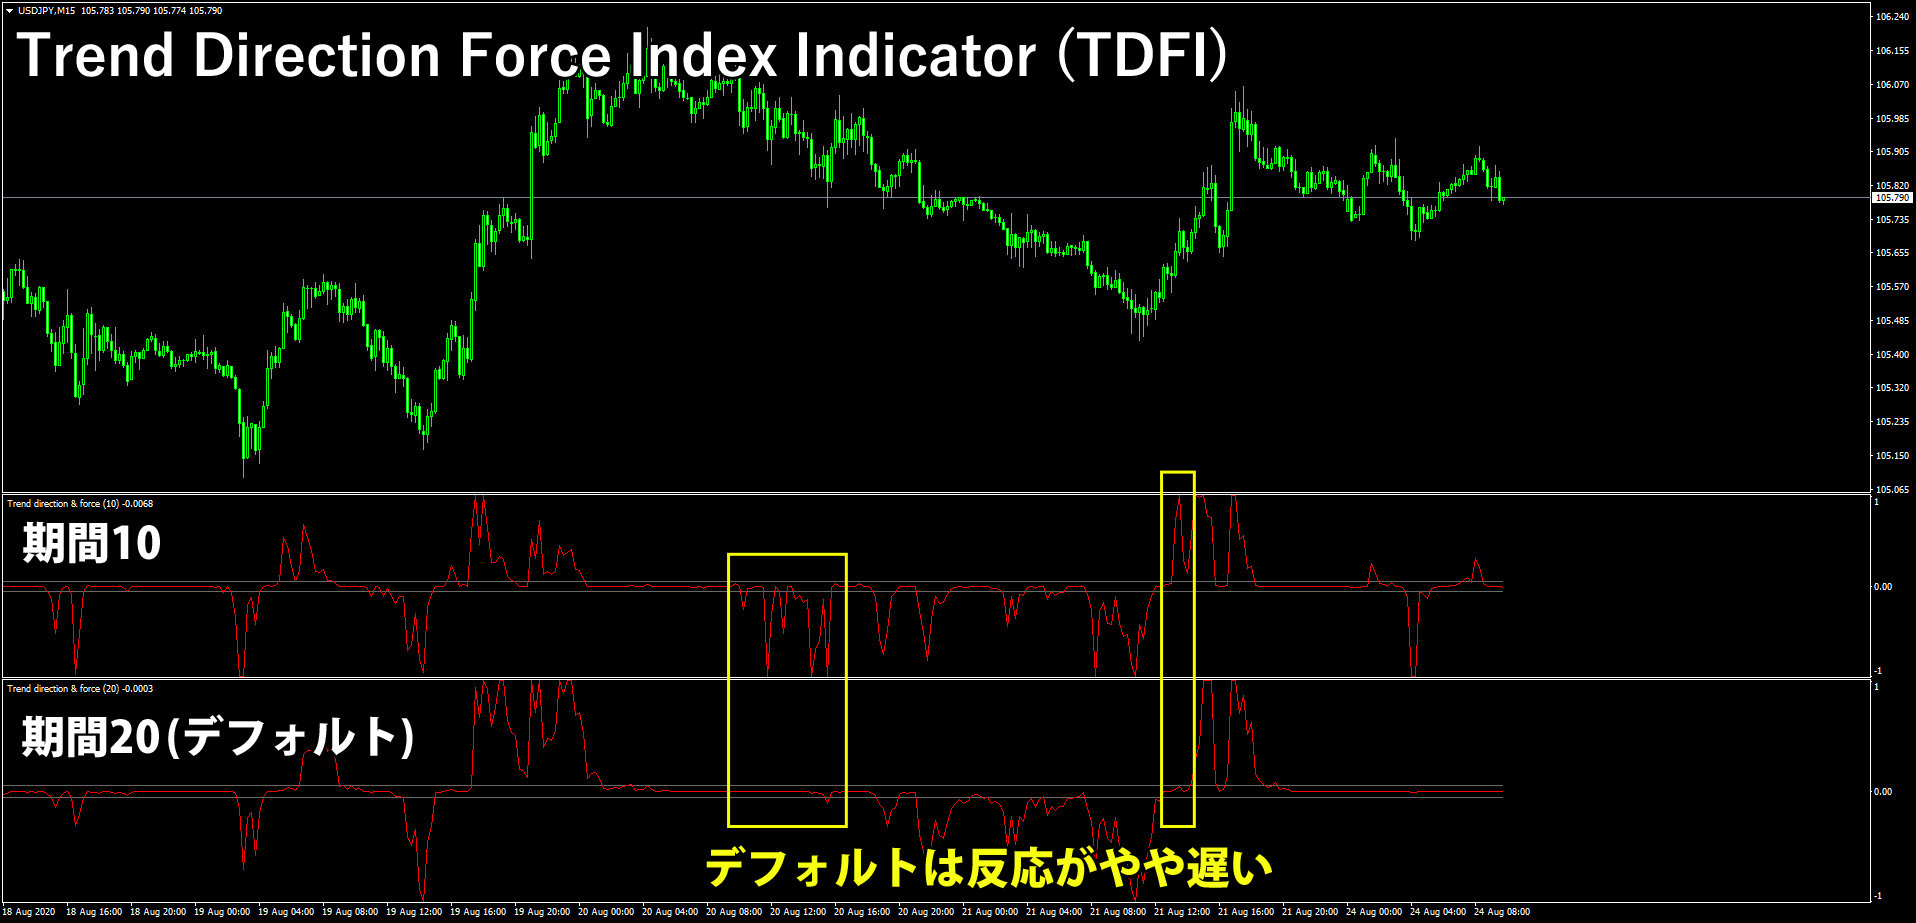 Trend Direction Force Index Indicator (TDFI)の設定による違い